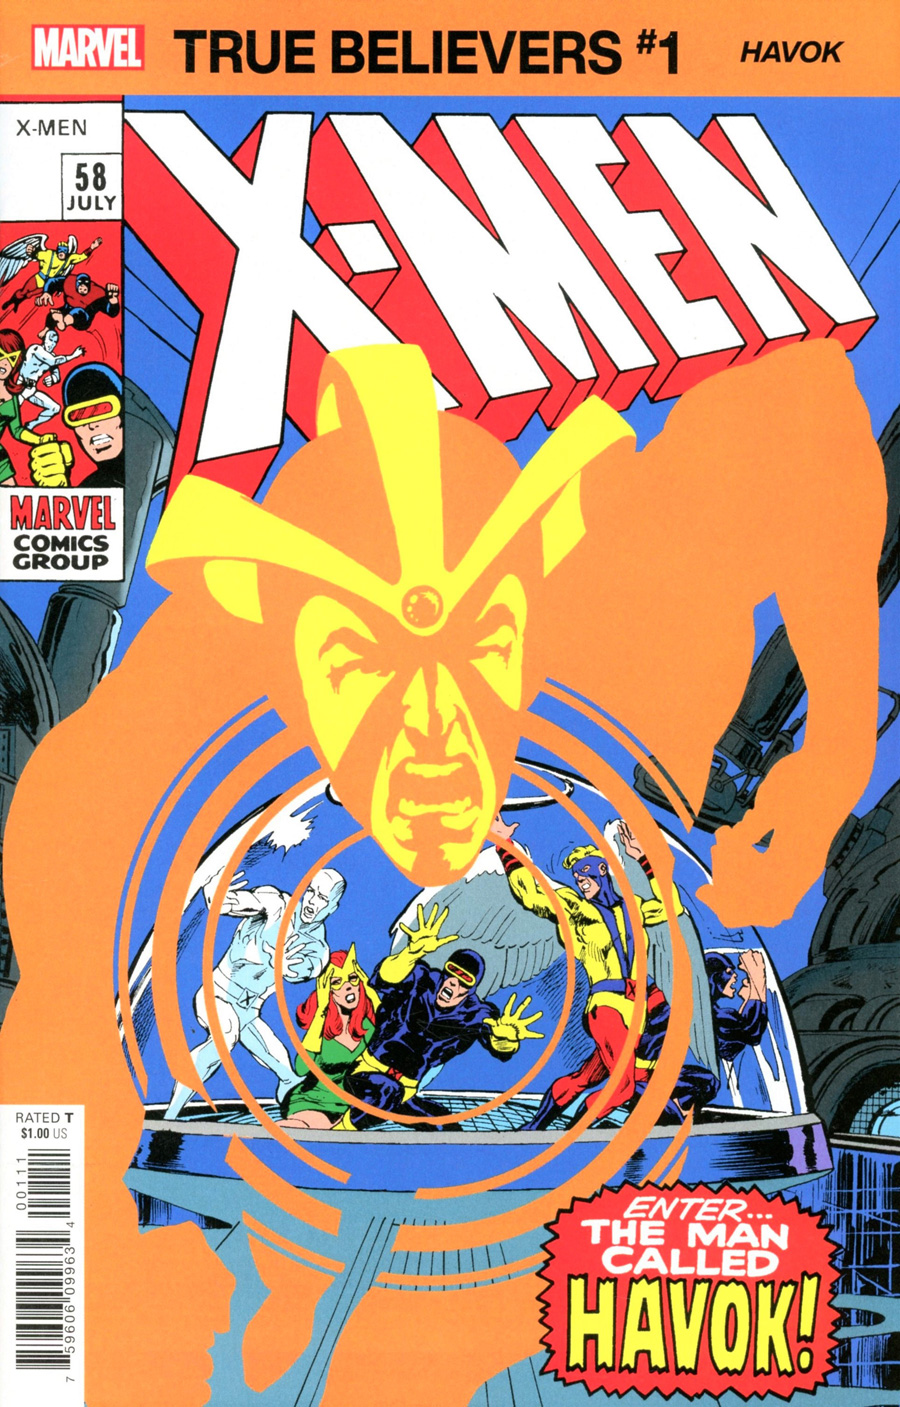 True Believers: X-Men - Havok #1